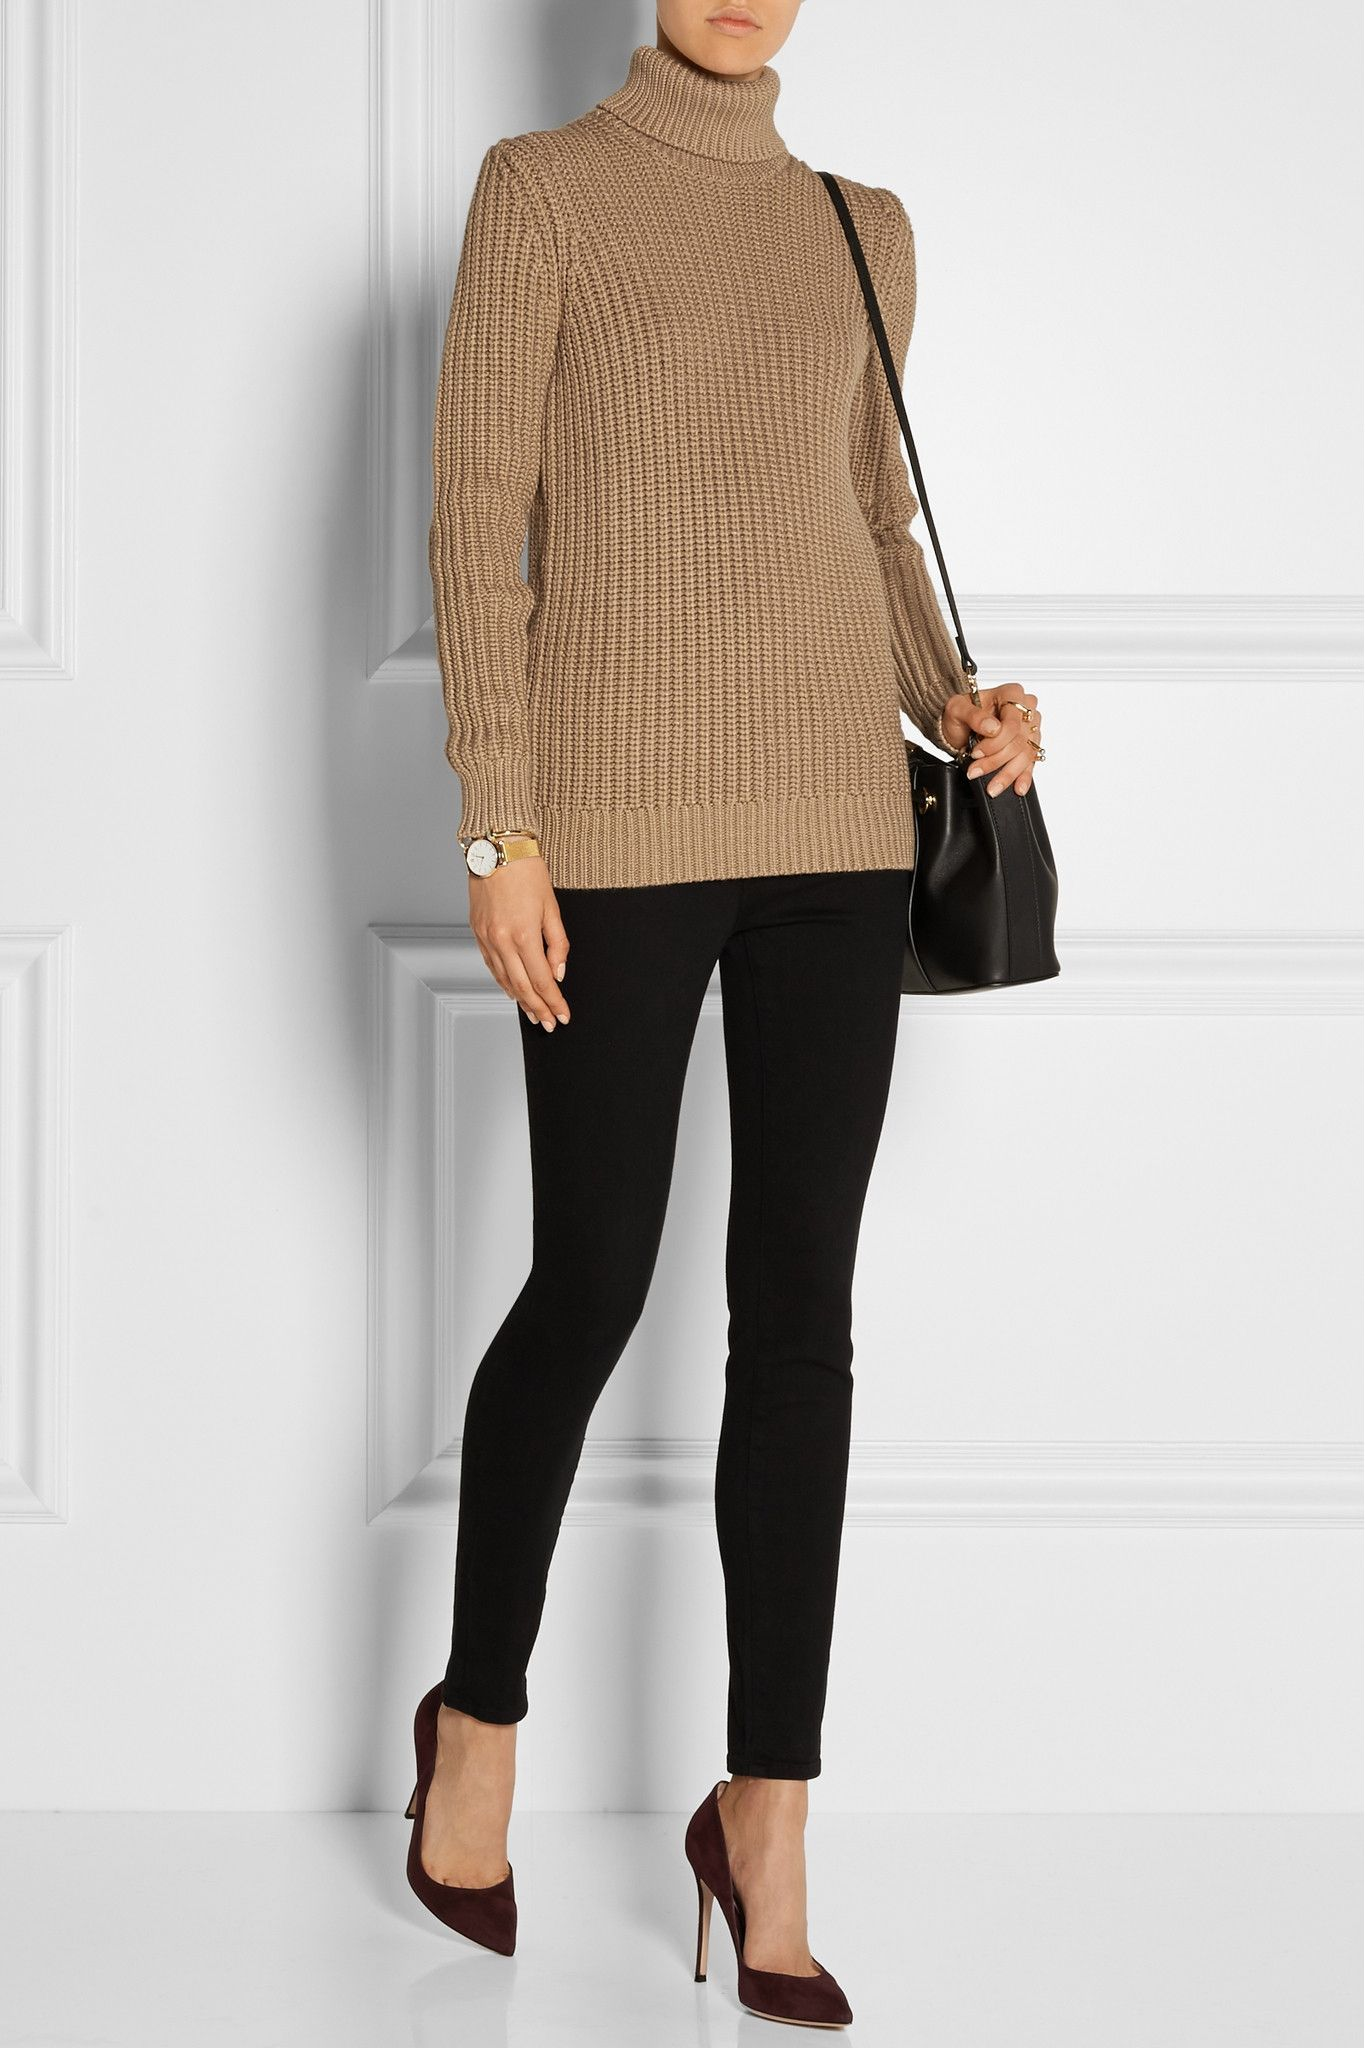 MICHAEL KORS COLLECTION Chunky-knit turtleneck sweater €855.00 https://www.net-a-porter.com/products/574389